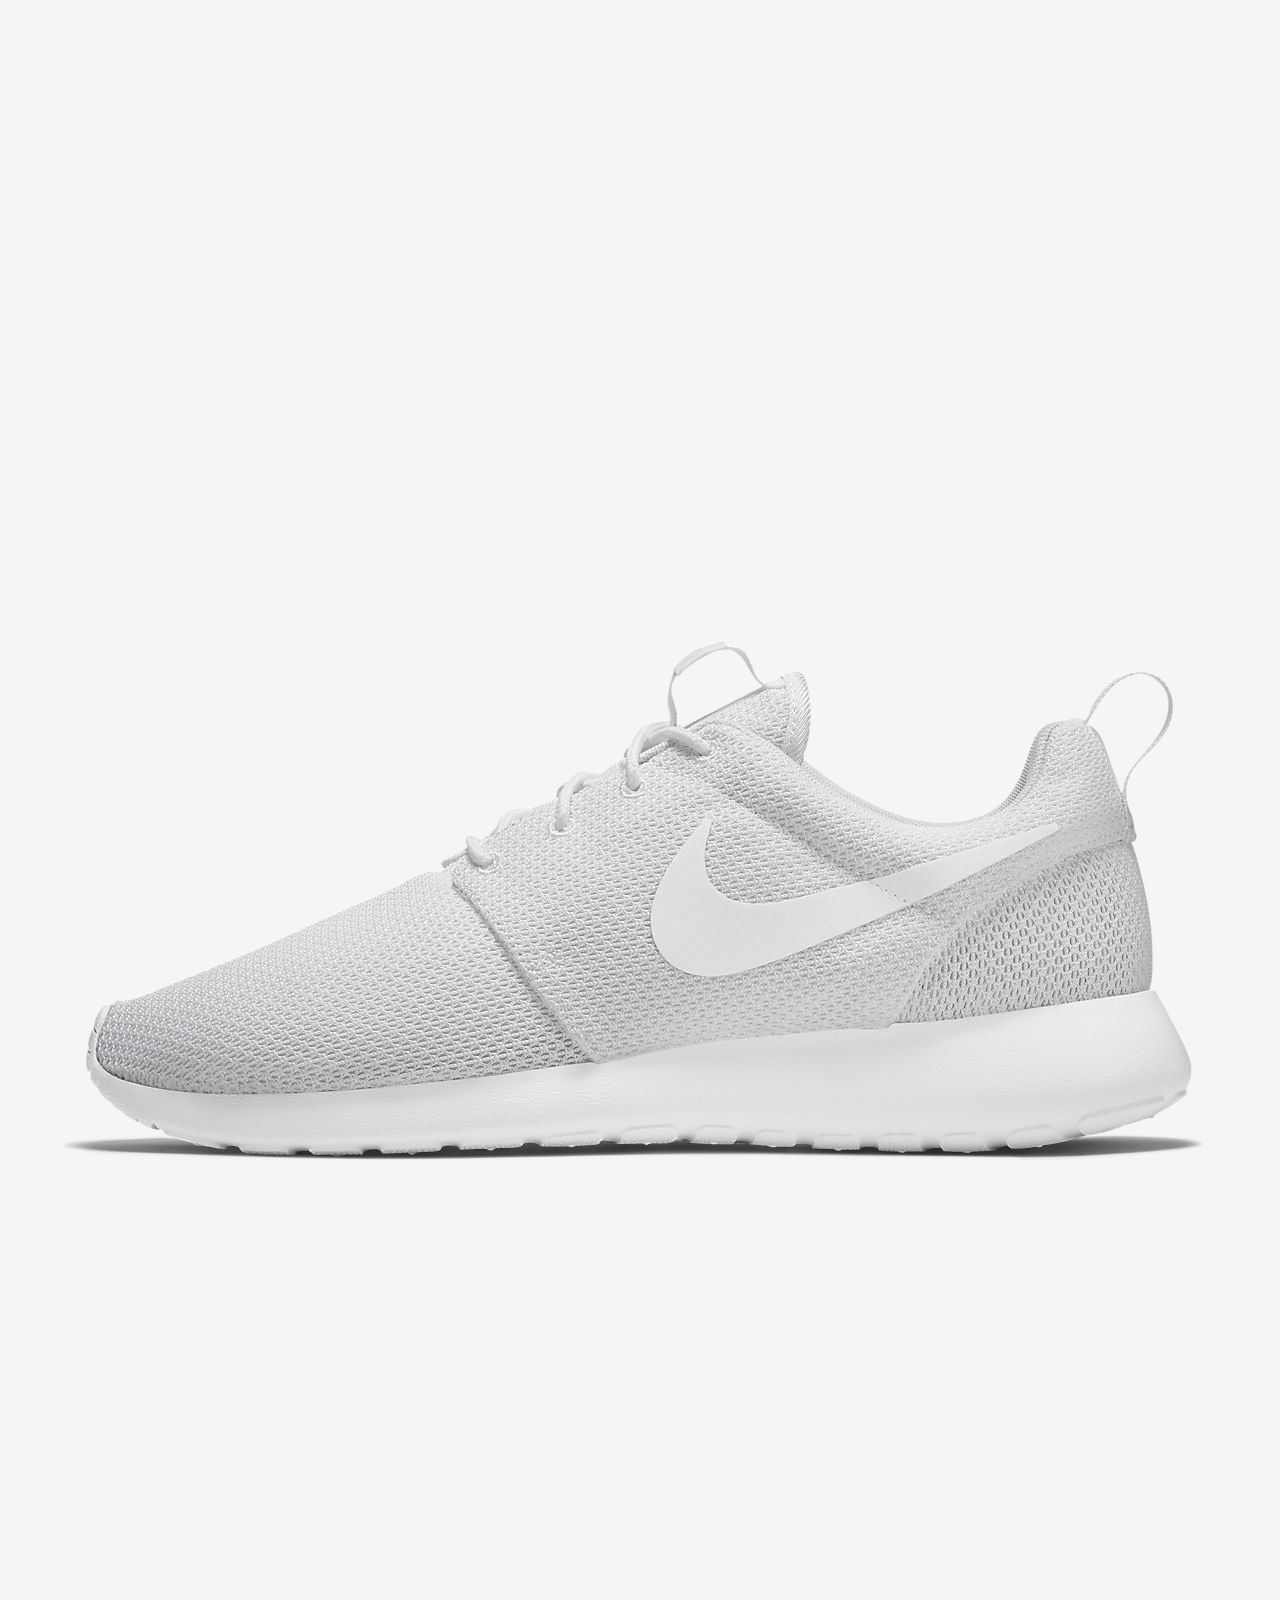 Herren Nike ROSHE ONE PREMIUM Trail Walking Schuhe Low